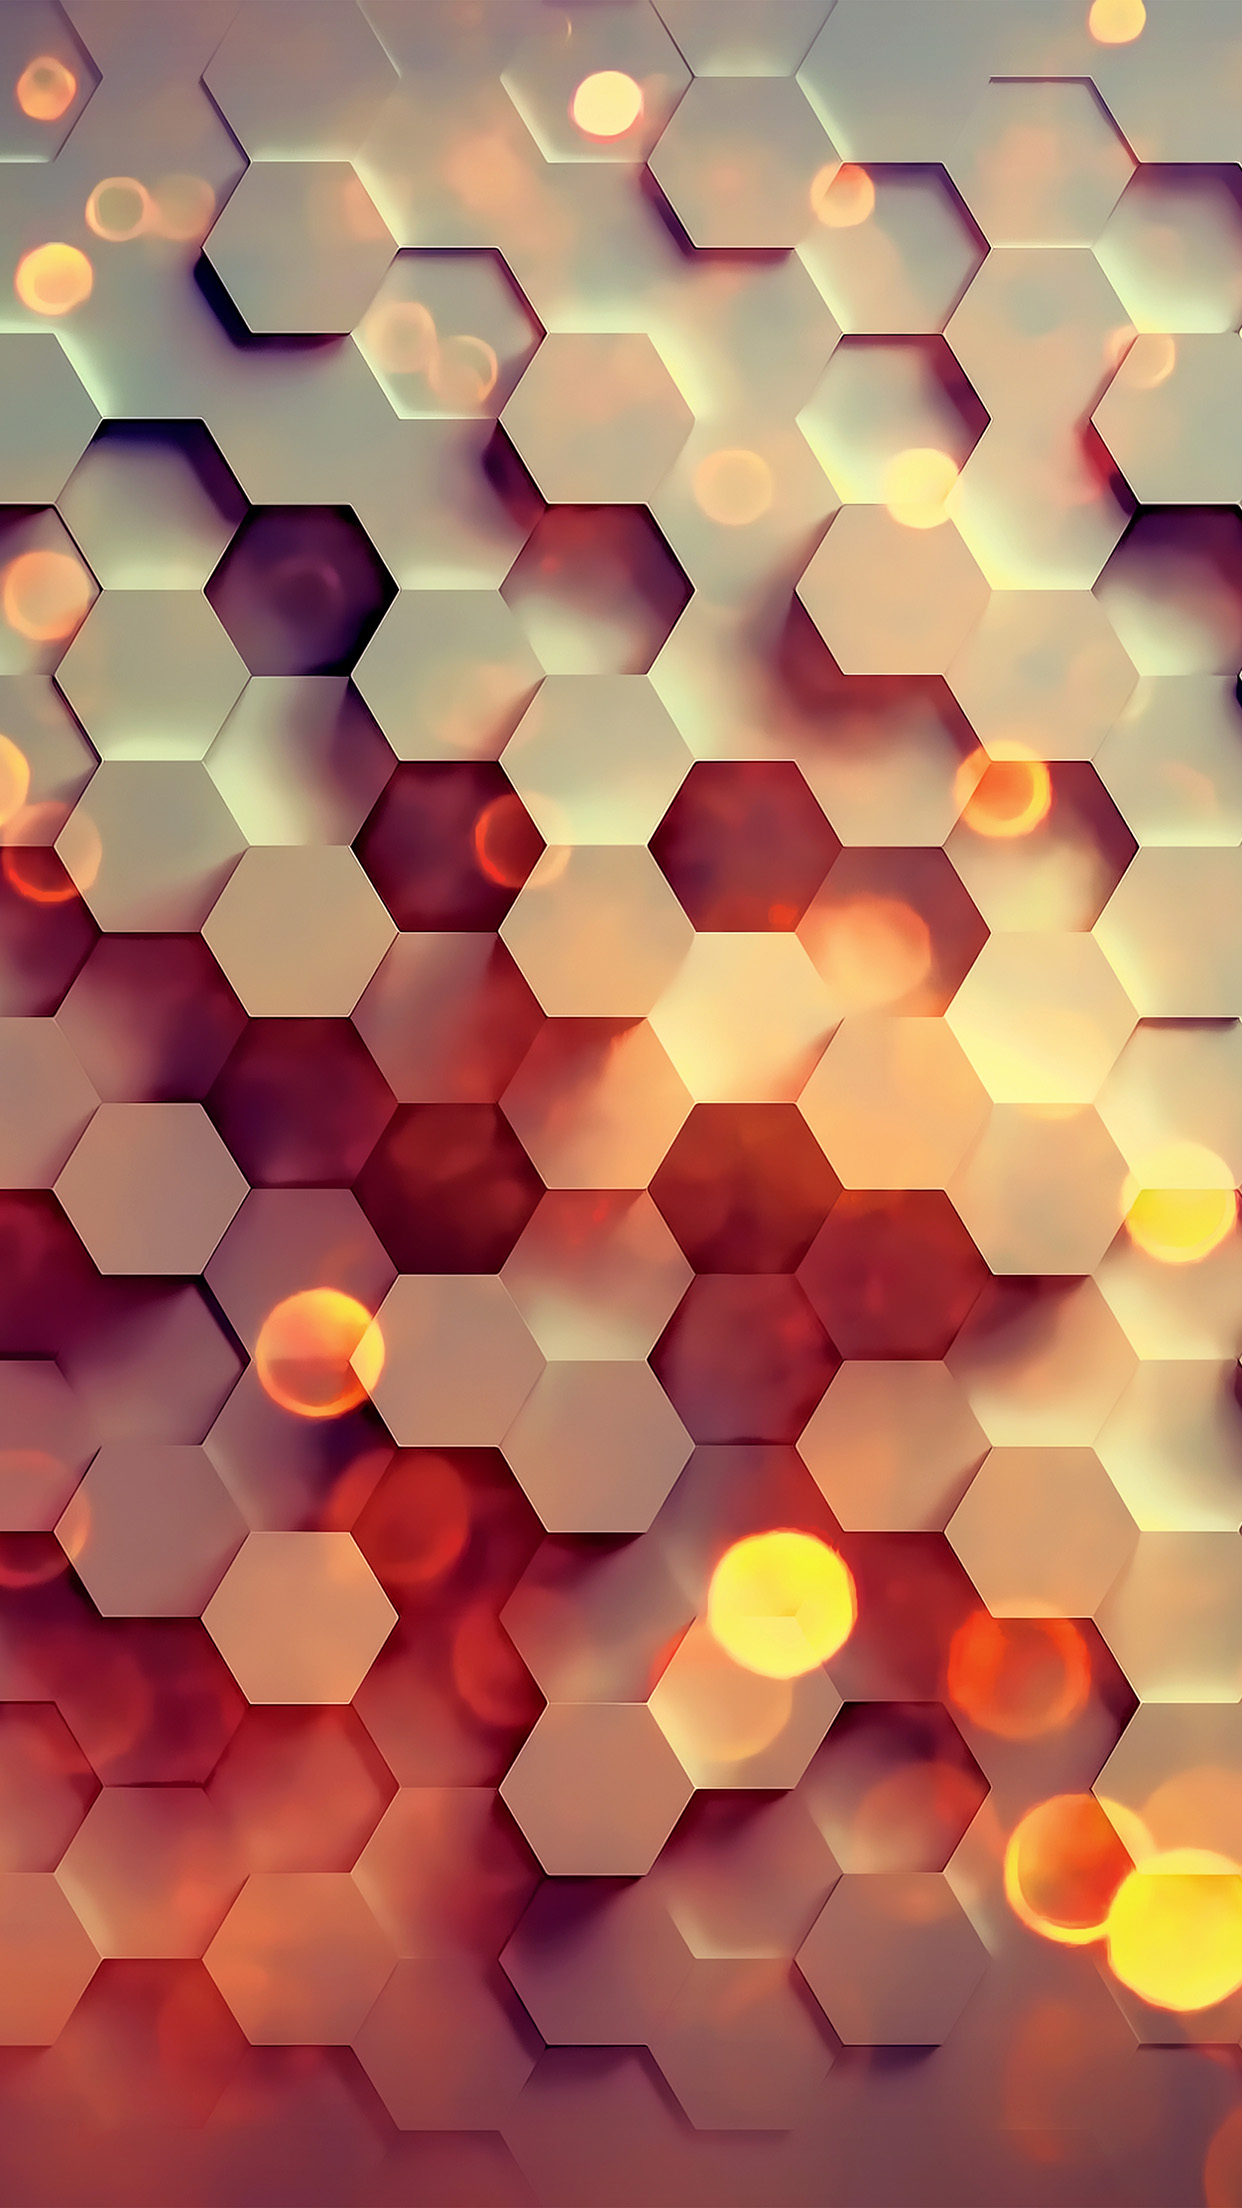 Cute Fall Wallpaper Papers Co Iphone Wallpaper Vy40 Honey Hexagon Digital